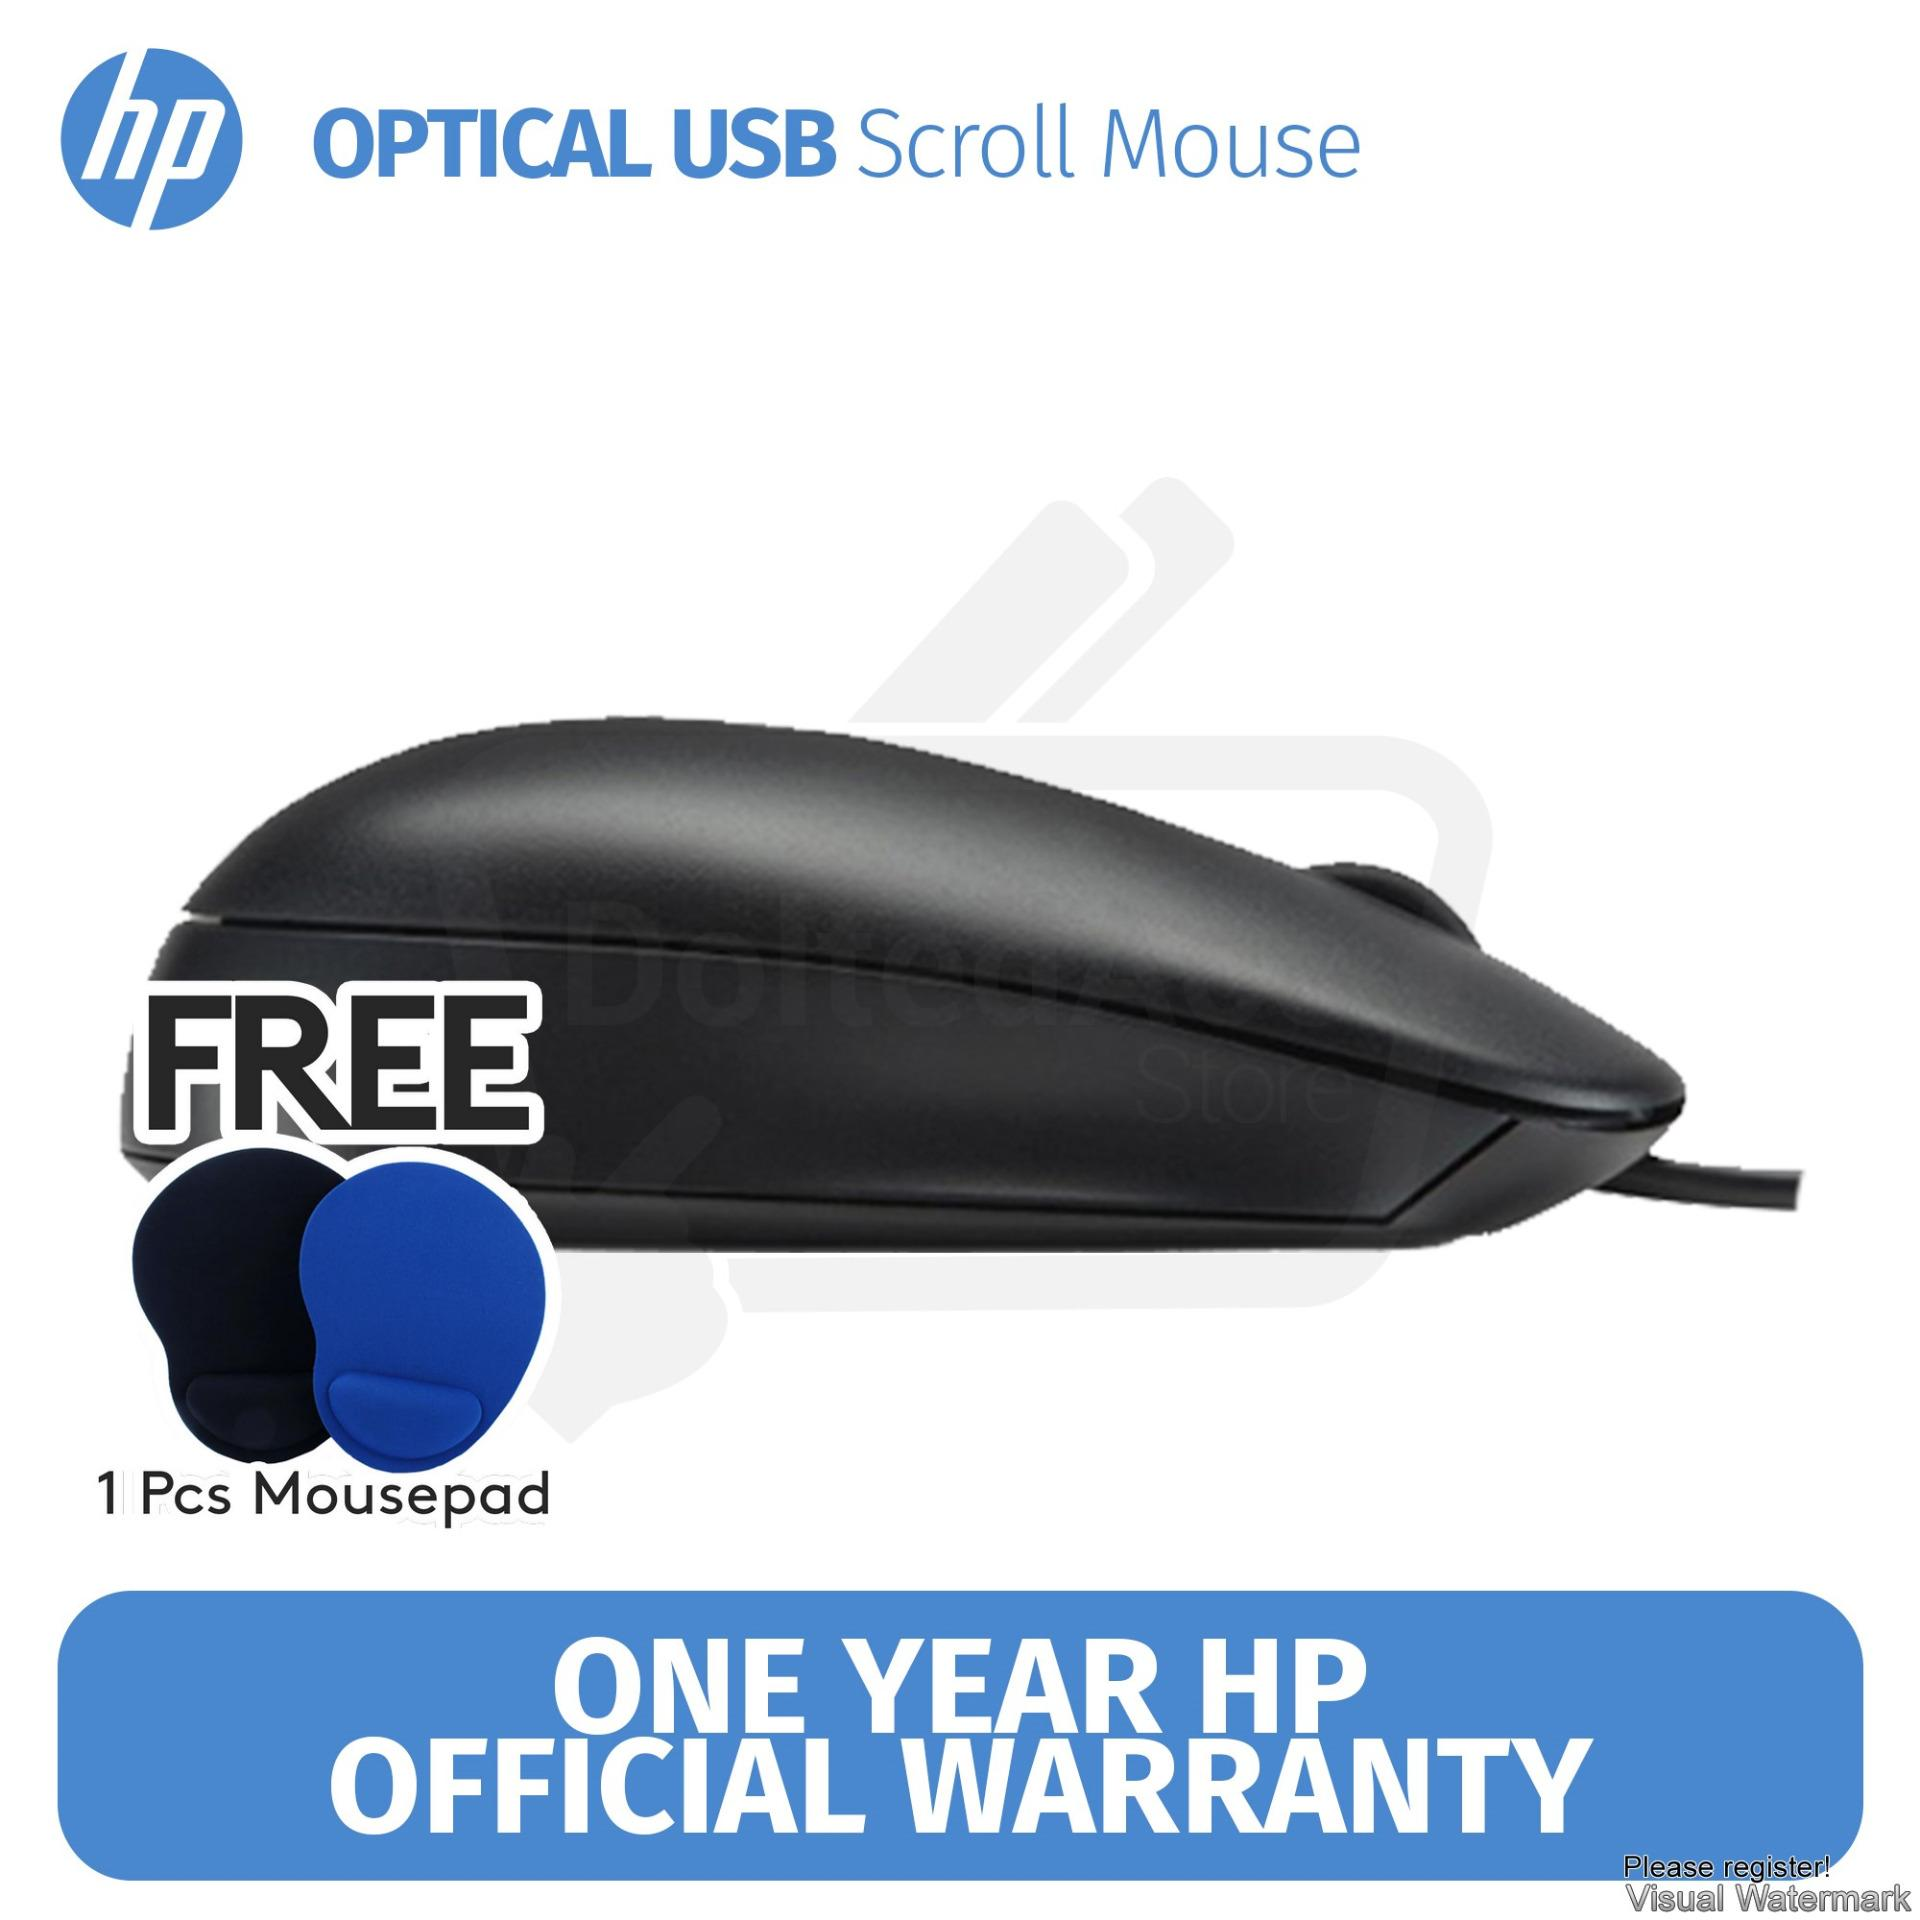 Kelebihan Hp Usb Optical Scroll Mouse Mousepad Terkini Daftar M100 Gaming Hitam 3